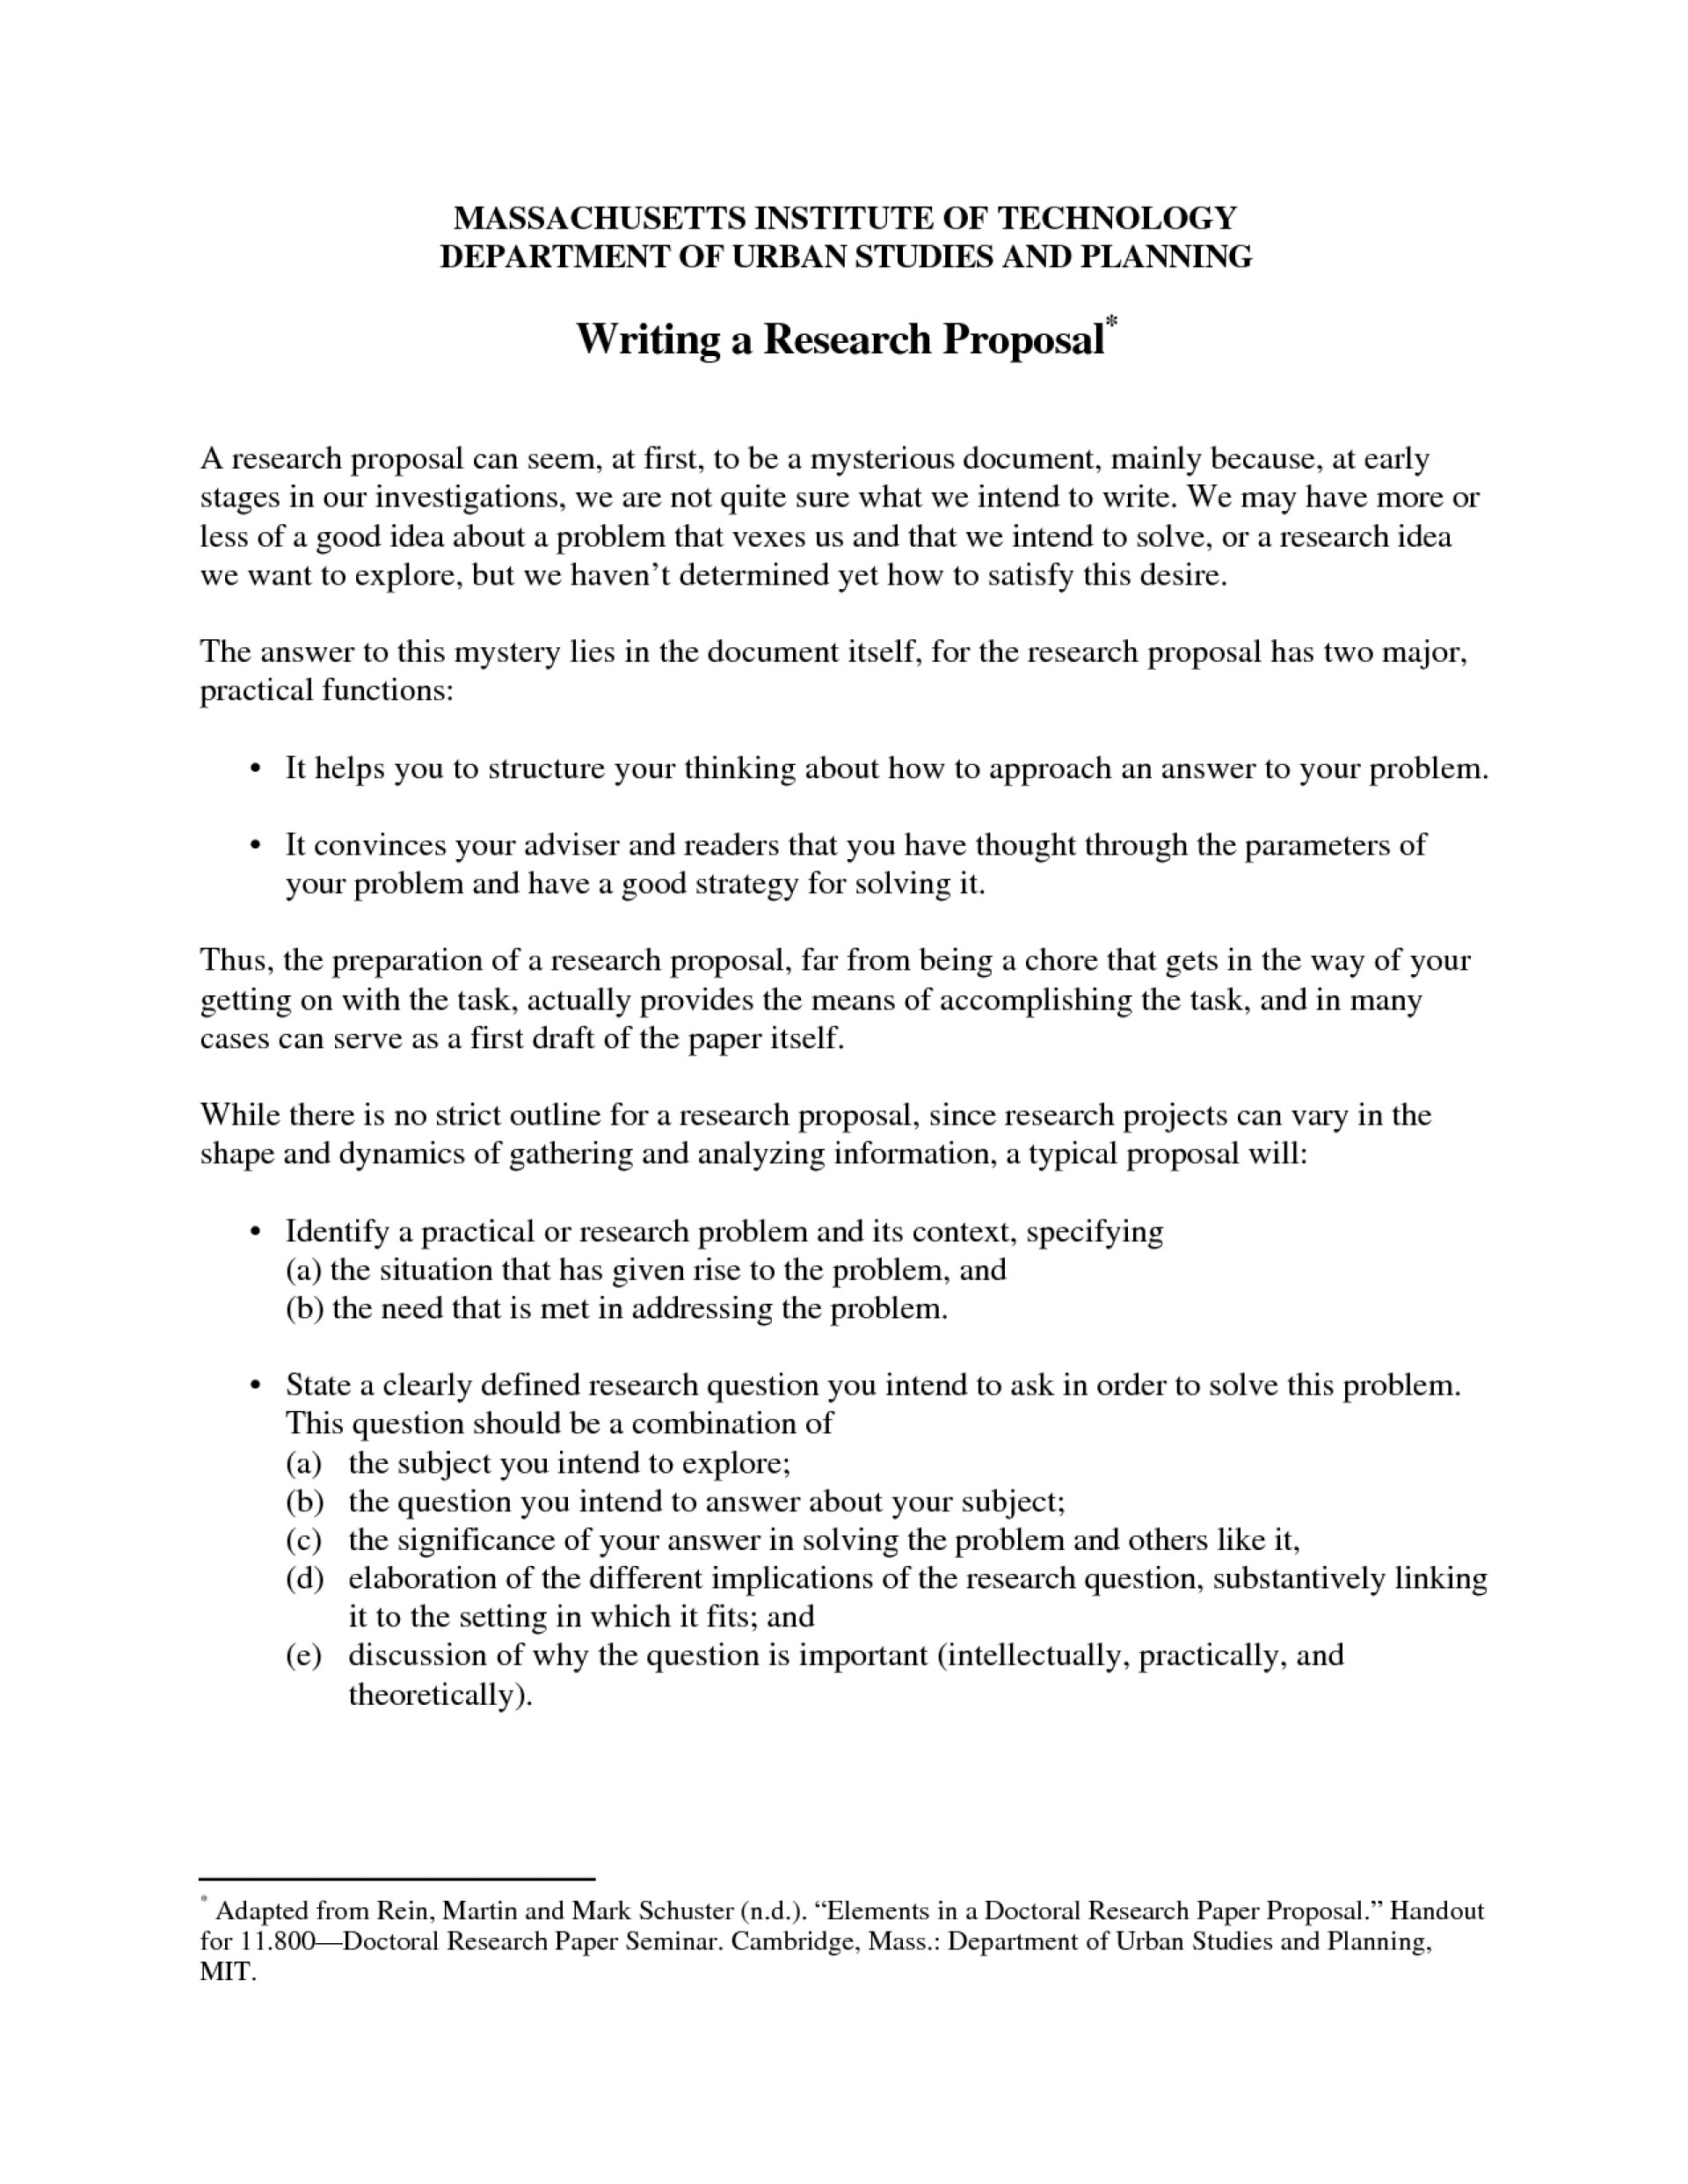 028 Research Paper Quotes What Does Proposal Look Like 629236 Amazing Funny Direct Mla Format 1920